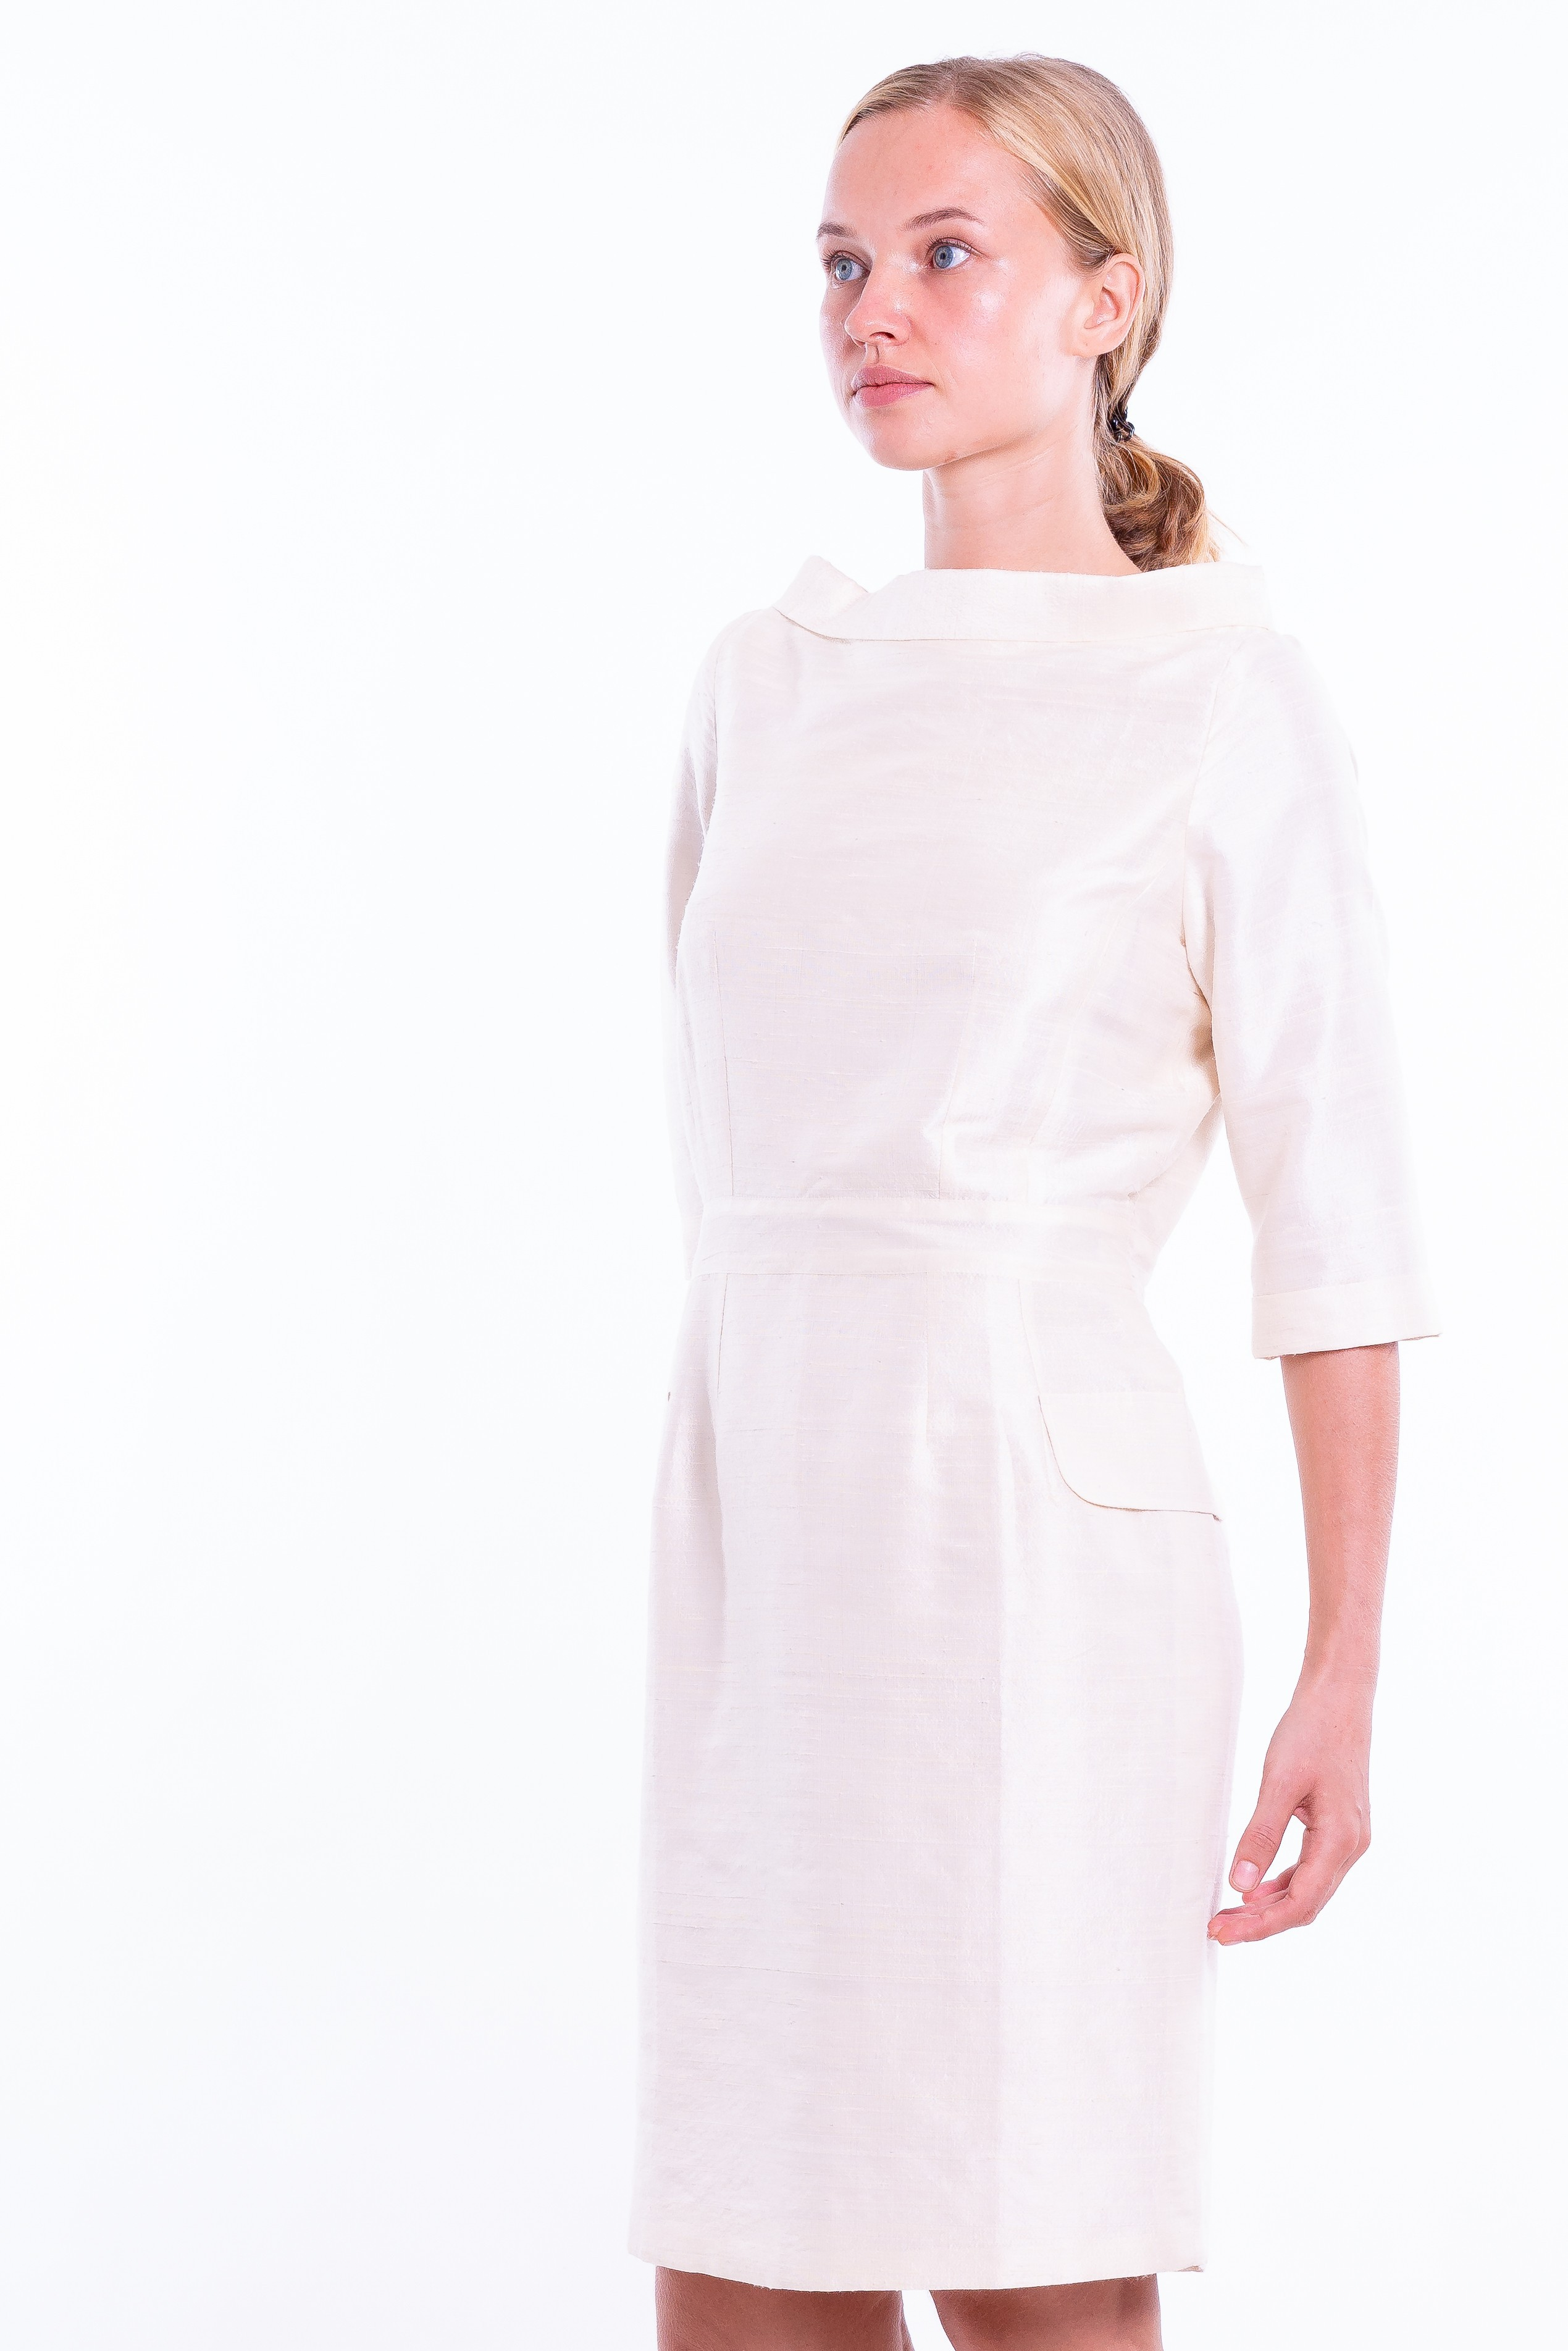 pure raw silk dress in natural ivory, mid-length, vintage inspiration, broad neckline, pencil skirt, fully lined in cotton